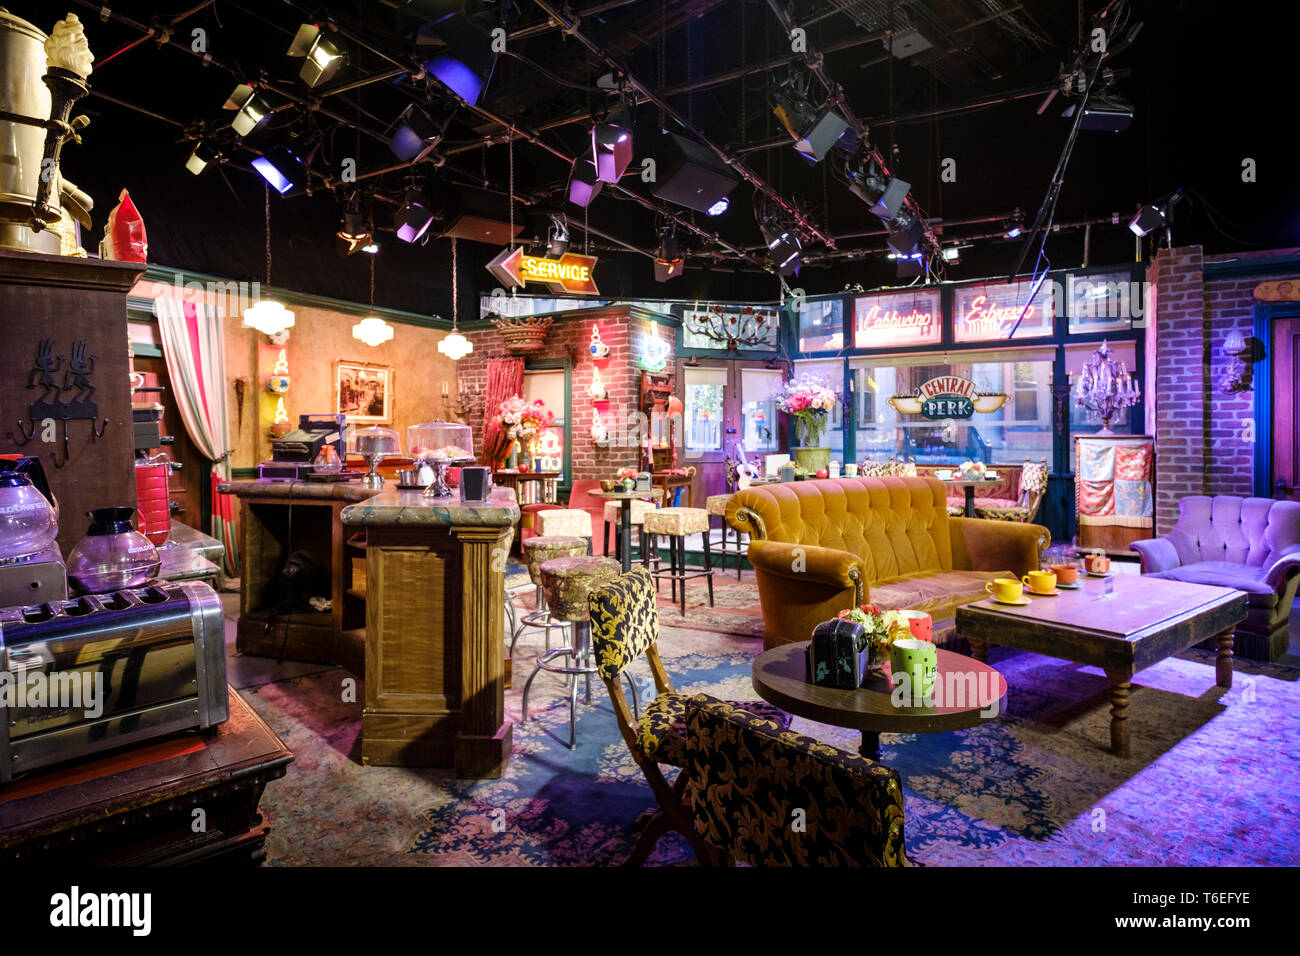 Central Perk Cafe Film Set Of World Famous Sitcom Friends At Warner Bros Studio Tour Hollywood In Los Angeles California Usa Stock Photo Alamy